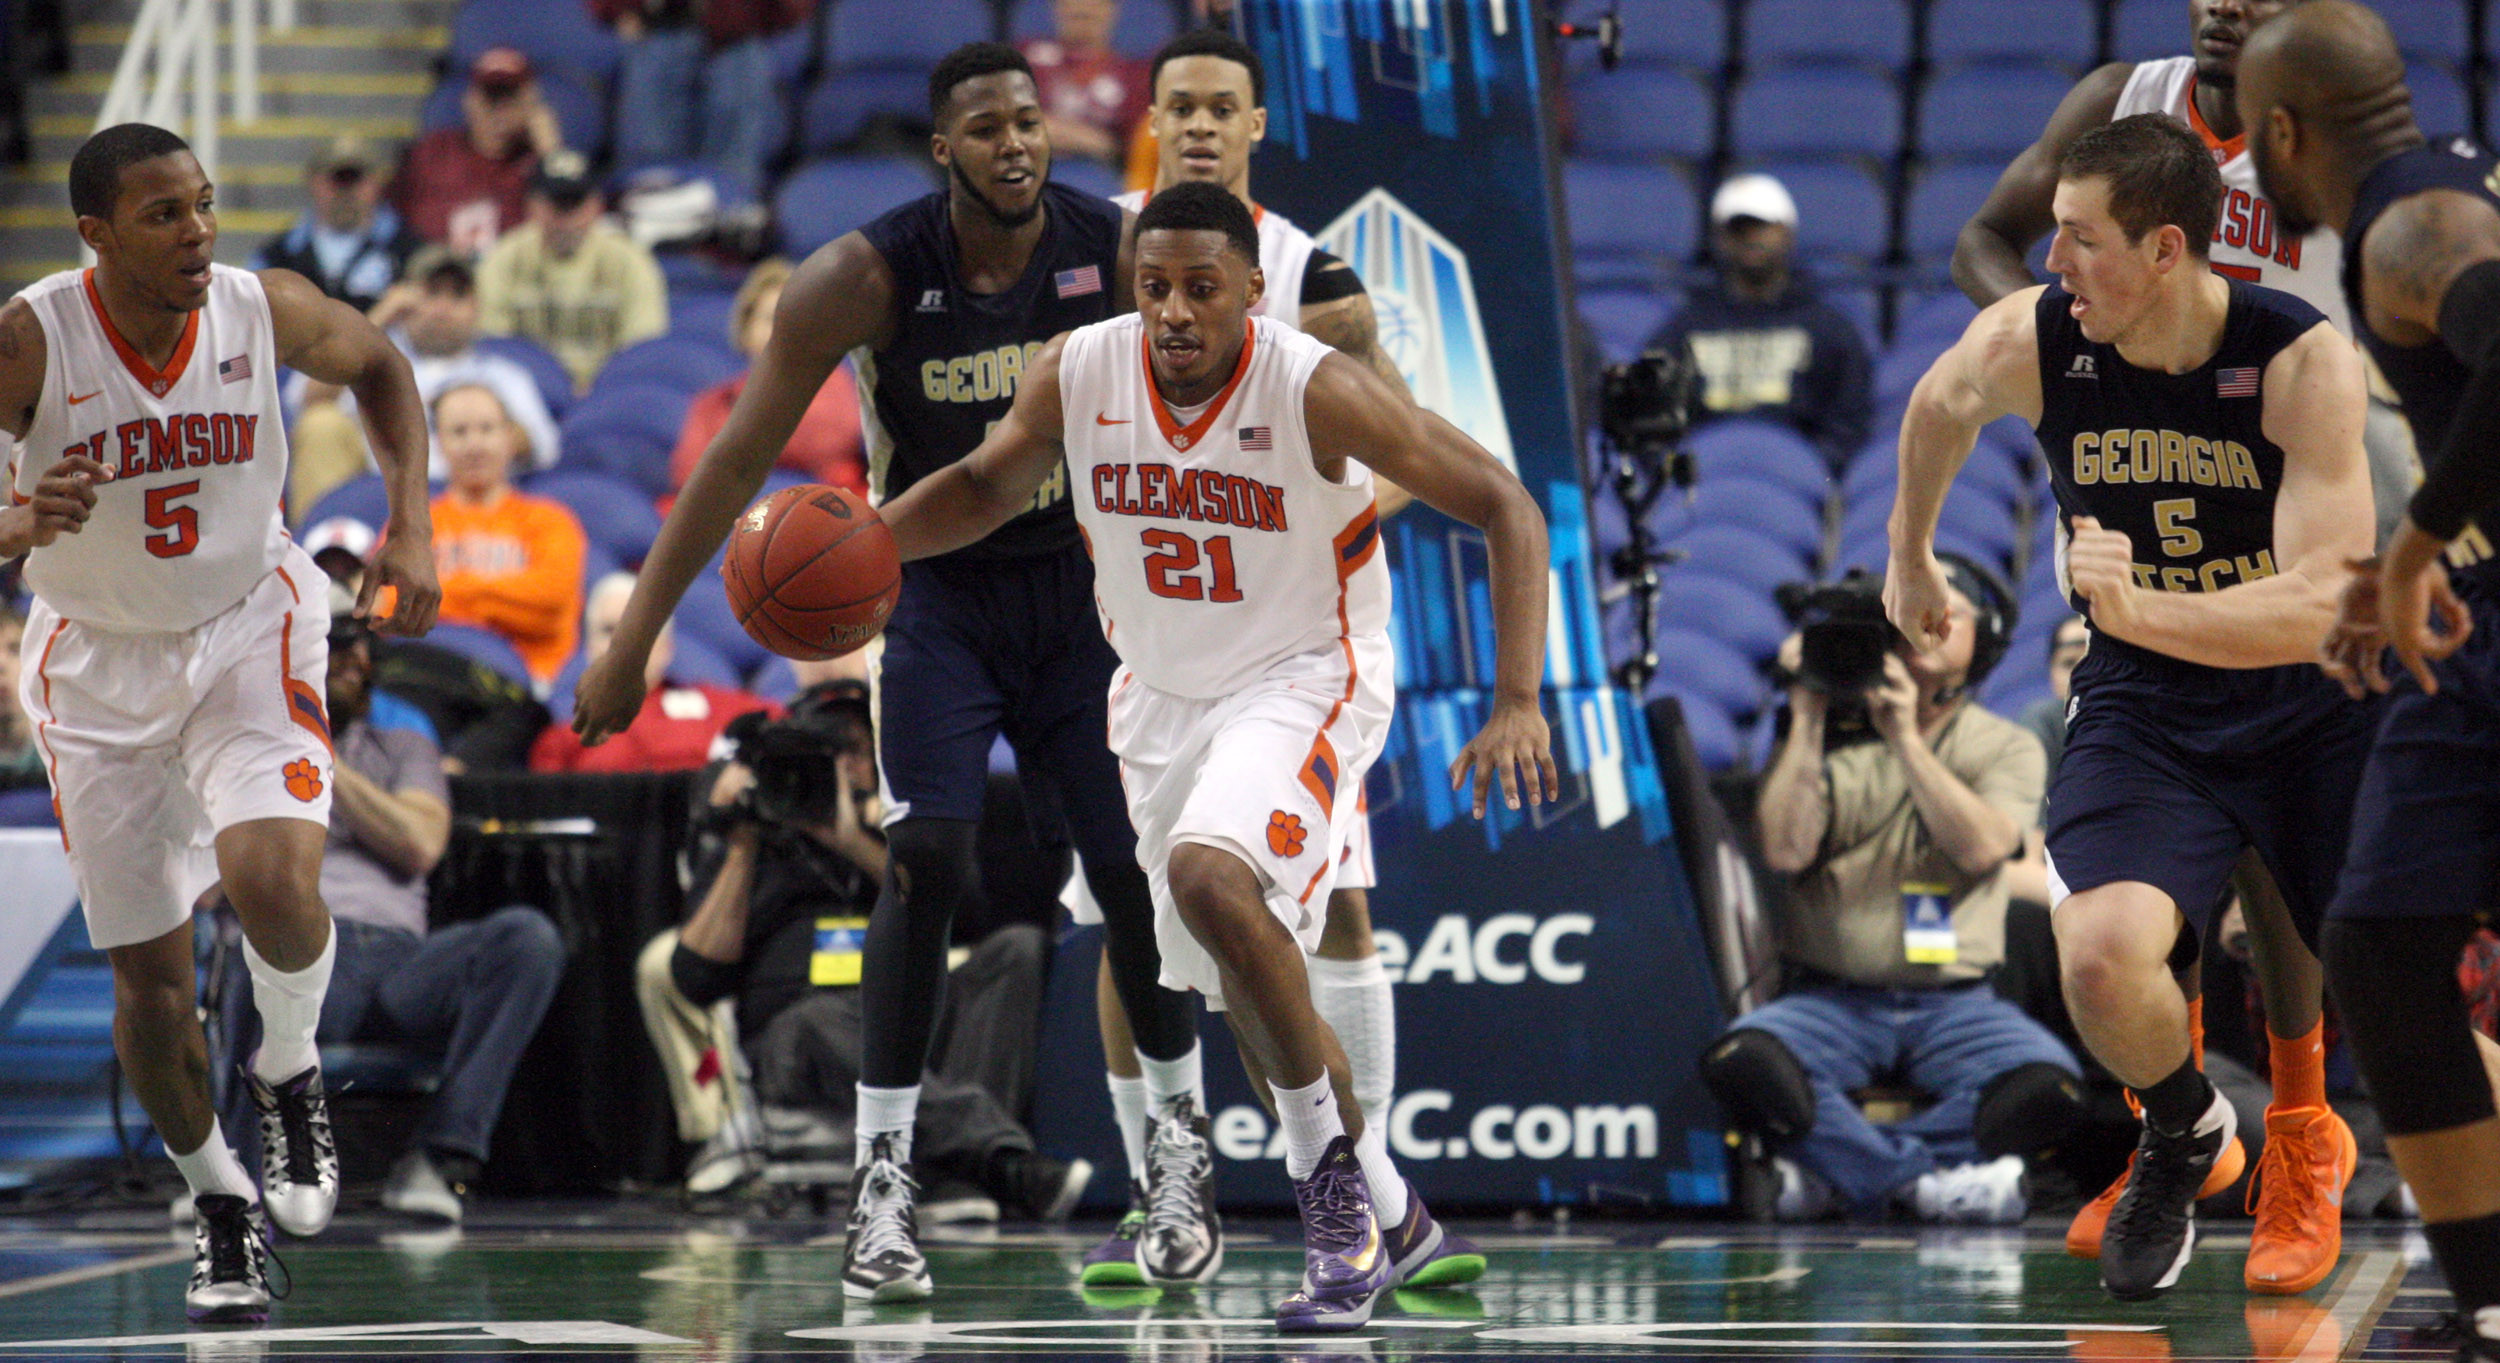 GAMEDAY – Clemson vs. Georgia State, #NIT (Tues., March 18)